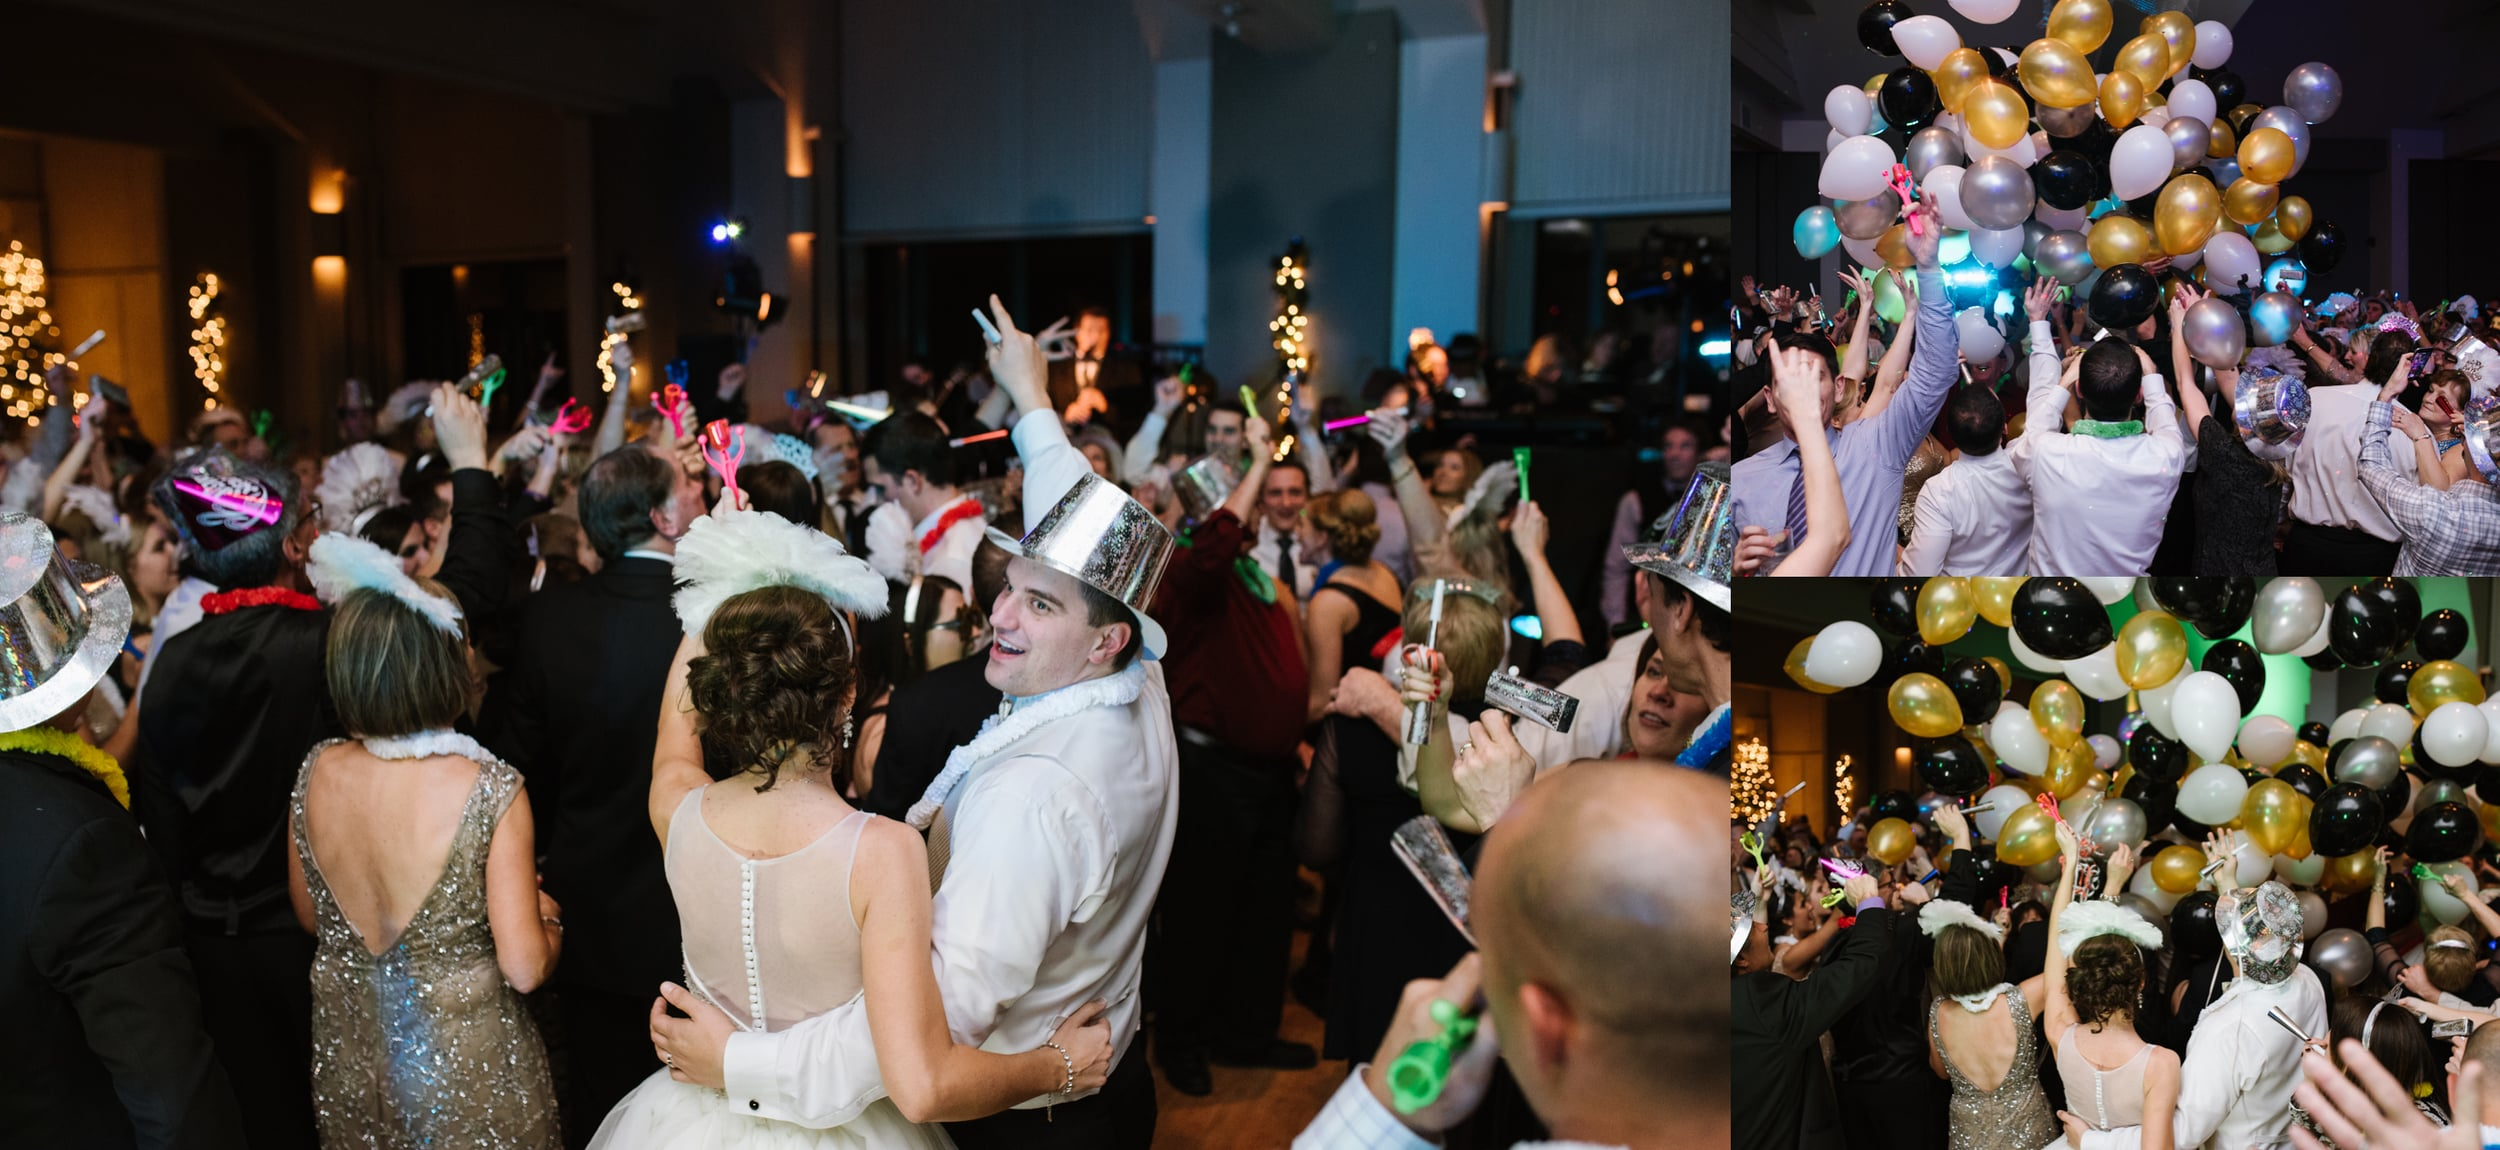 Chestnut Ridge Country Club New Year's Eve wedding, balloon drop .jpg